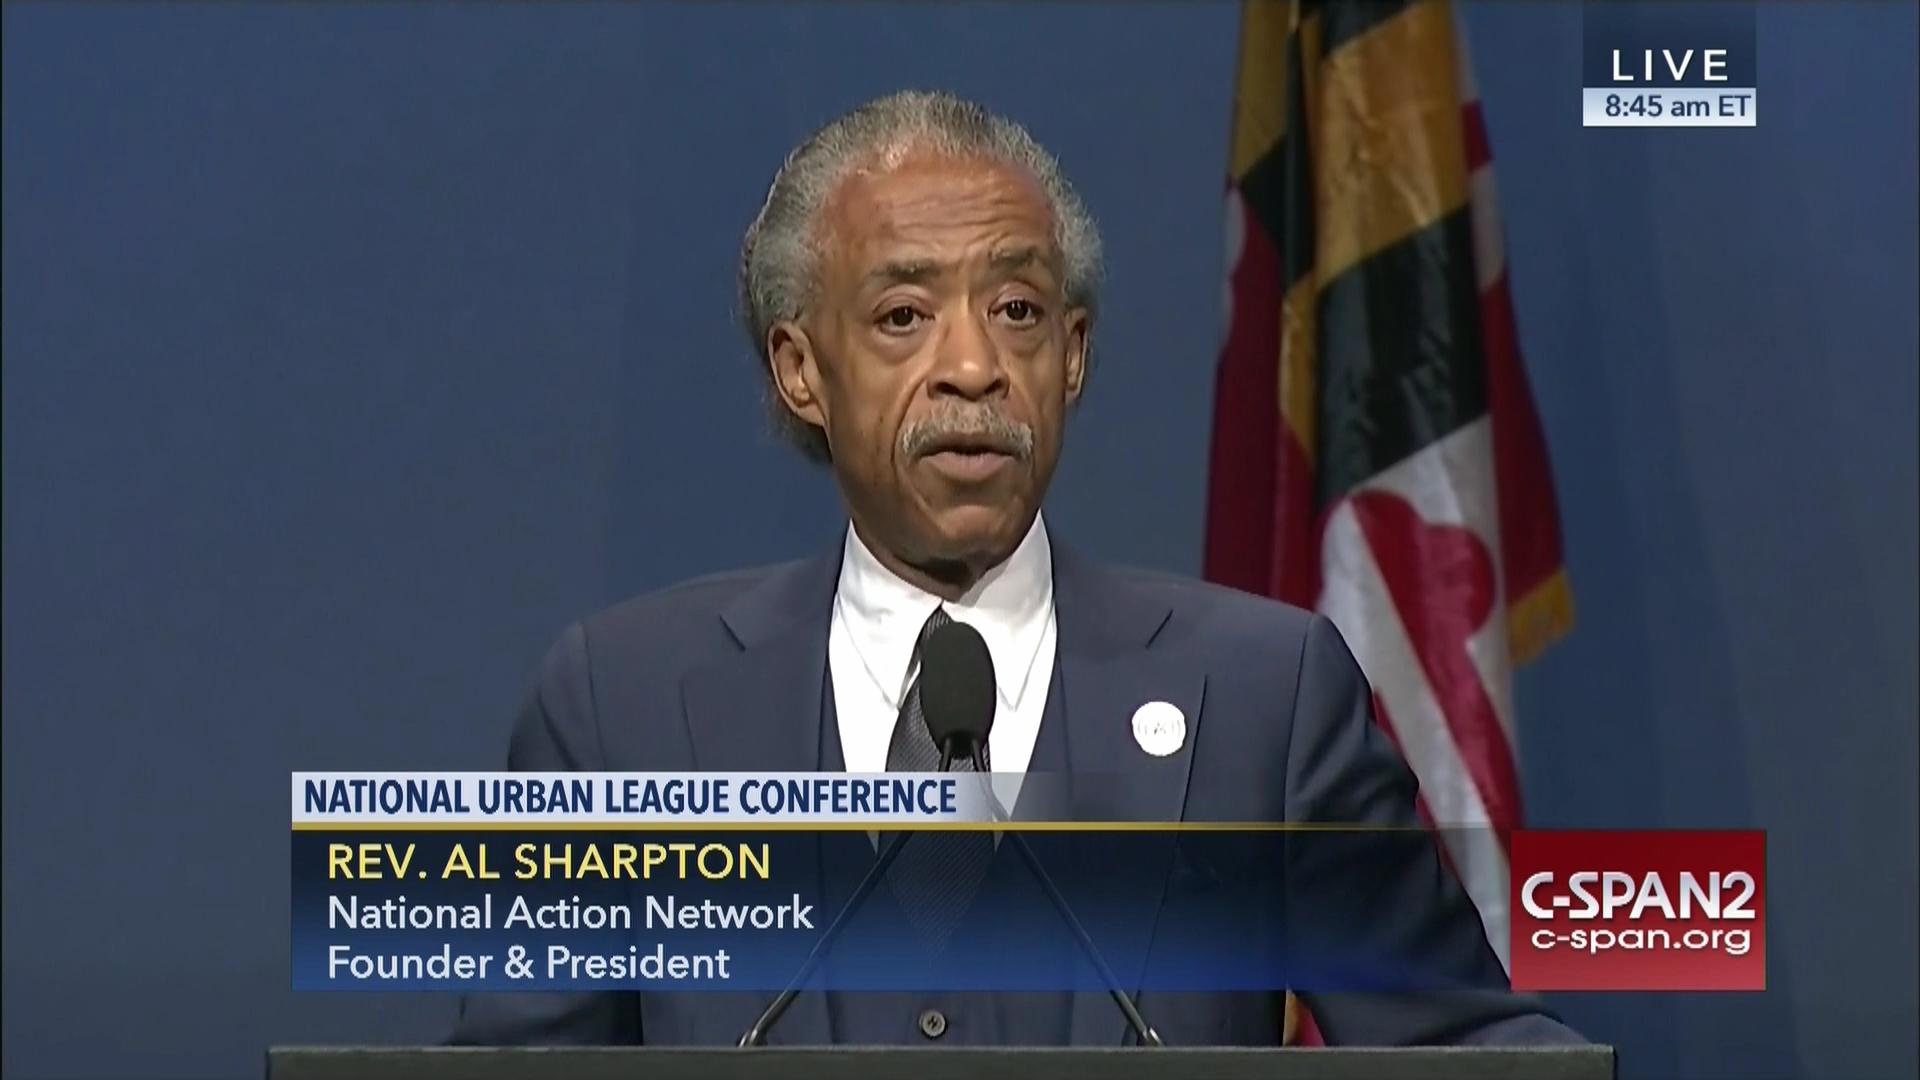 National Urban League Holds Annual Conference Baltimore C SPAN Org